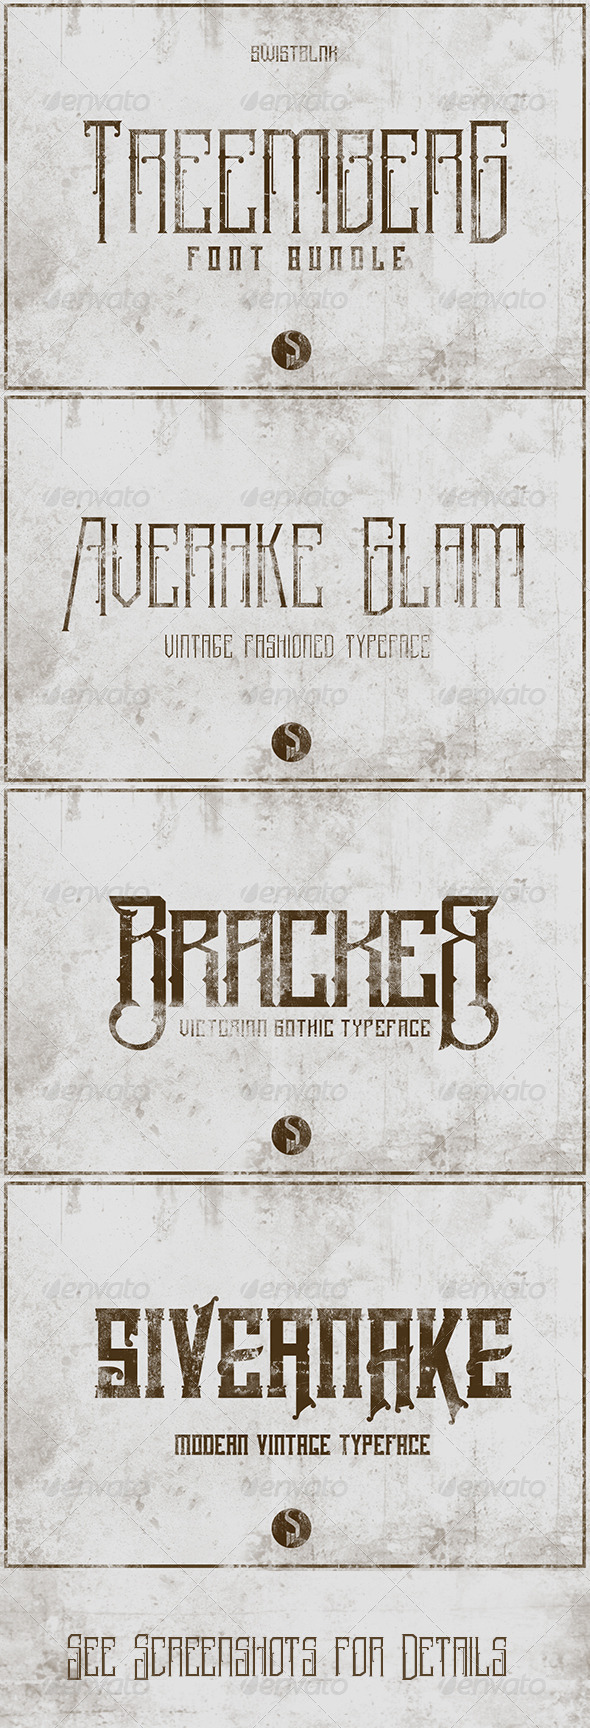 GraphicRiver Treemberg Font Bundle 7508185